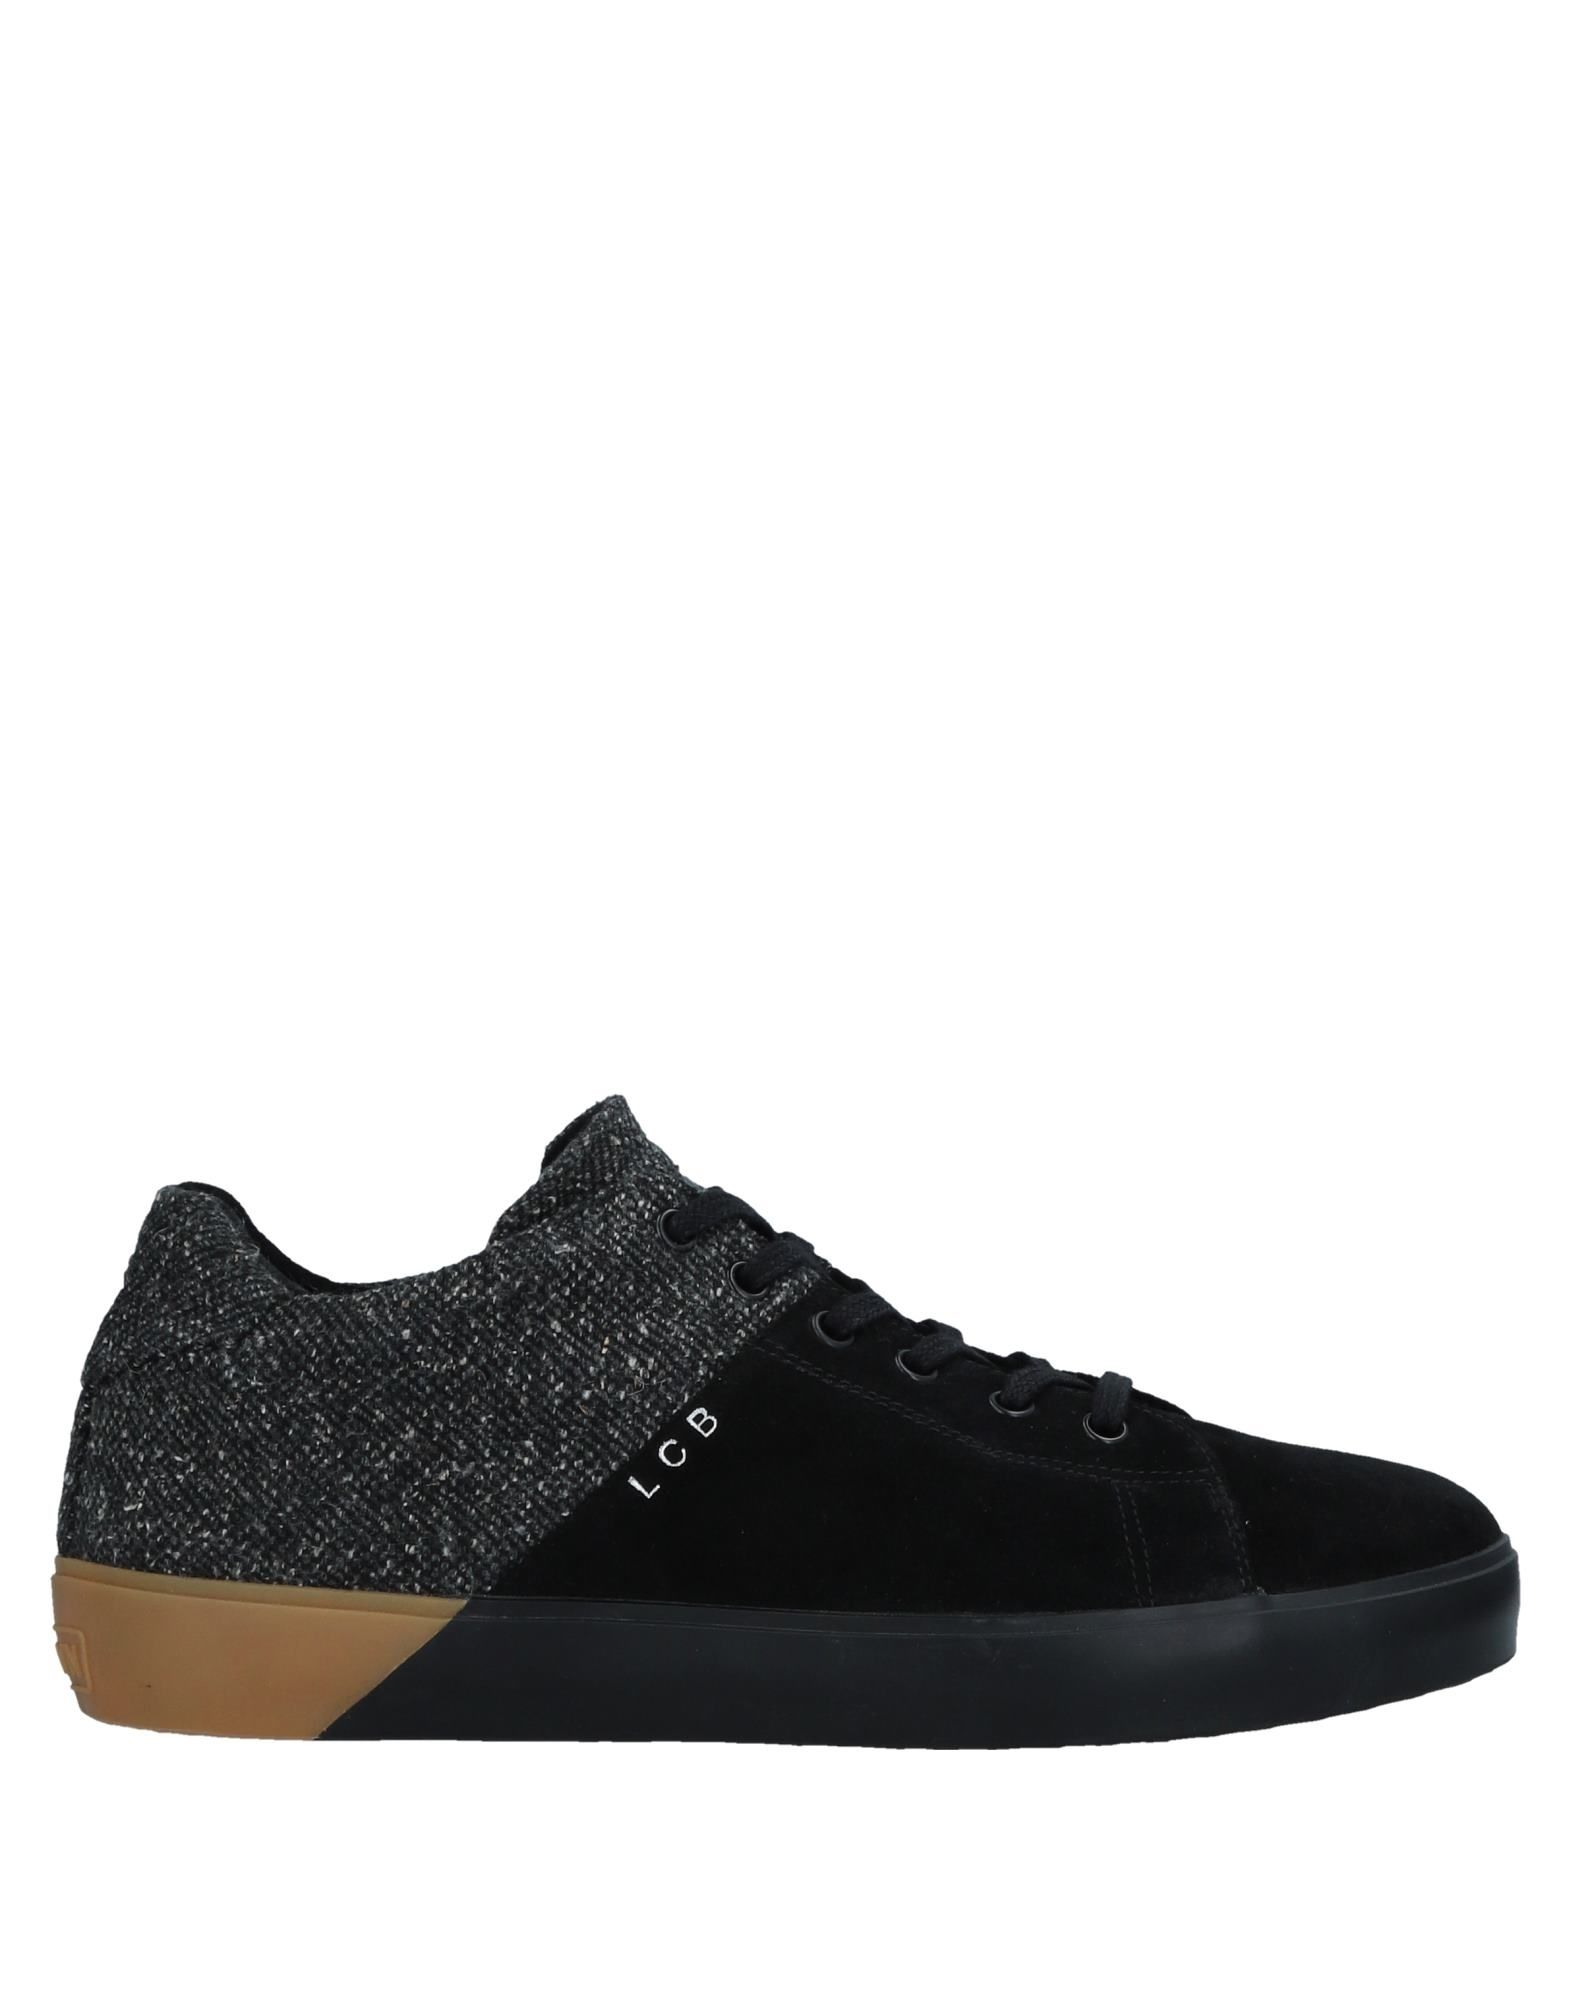 Leather Leather Crown Sneakers - Men Leather Leather Crown Sneakers online on  Canada - 11532046RC 89a1a8